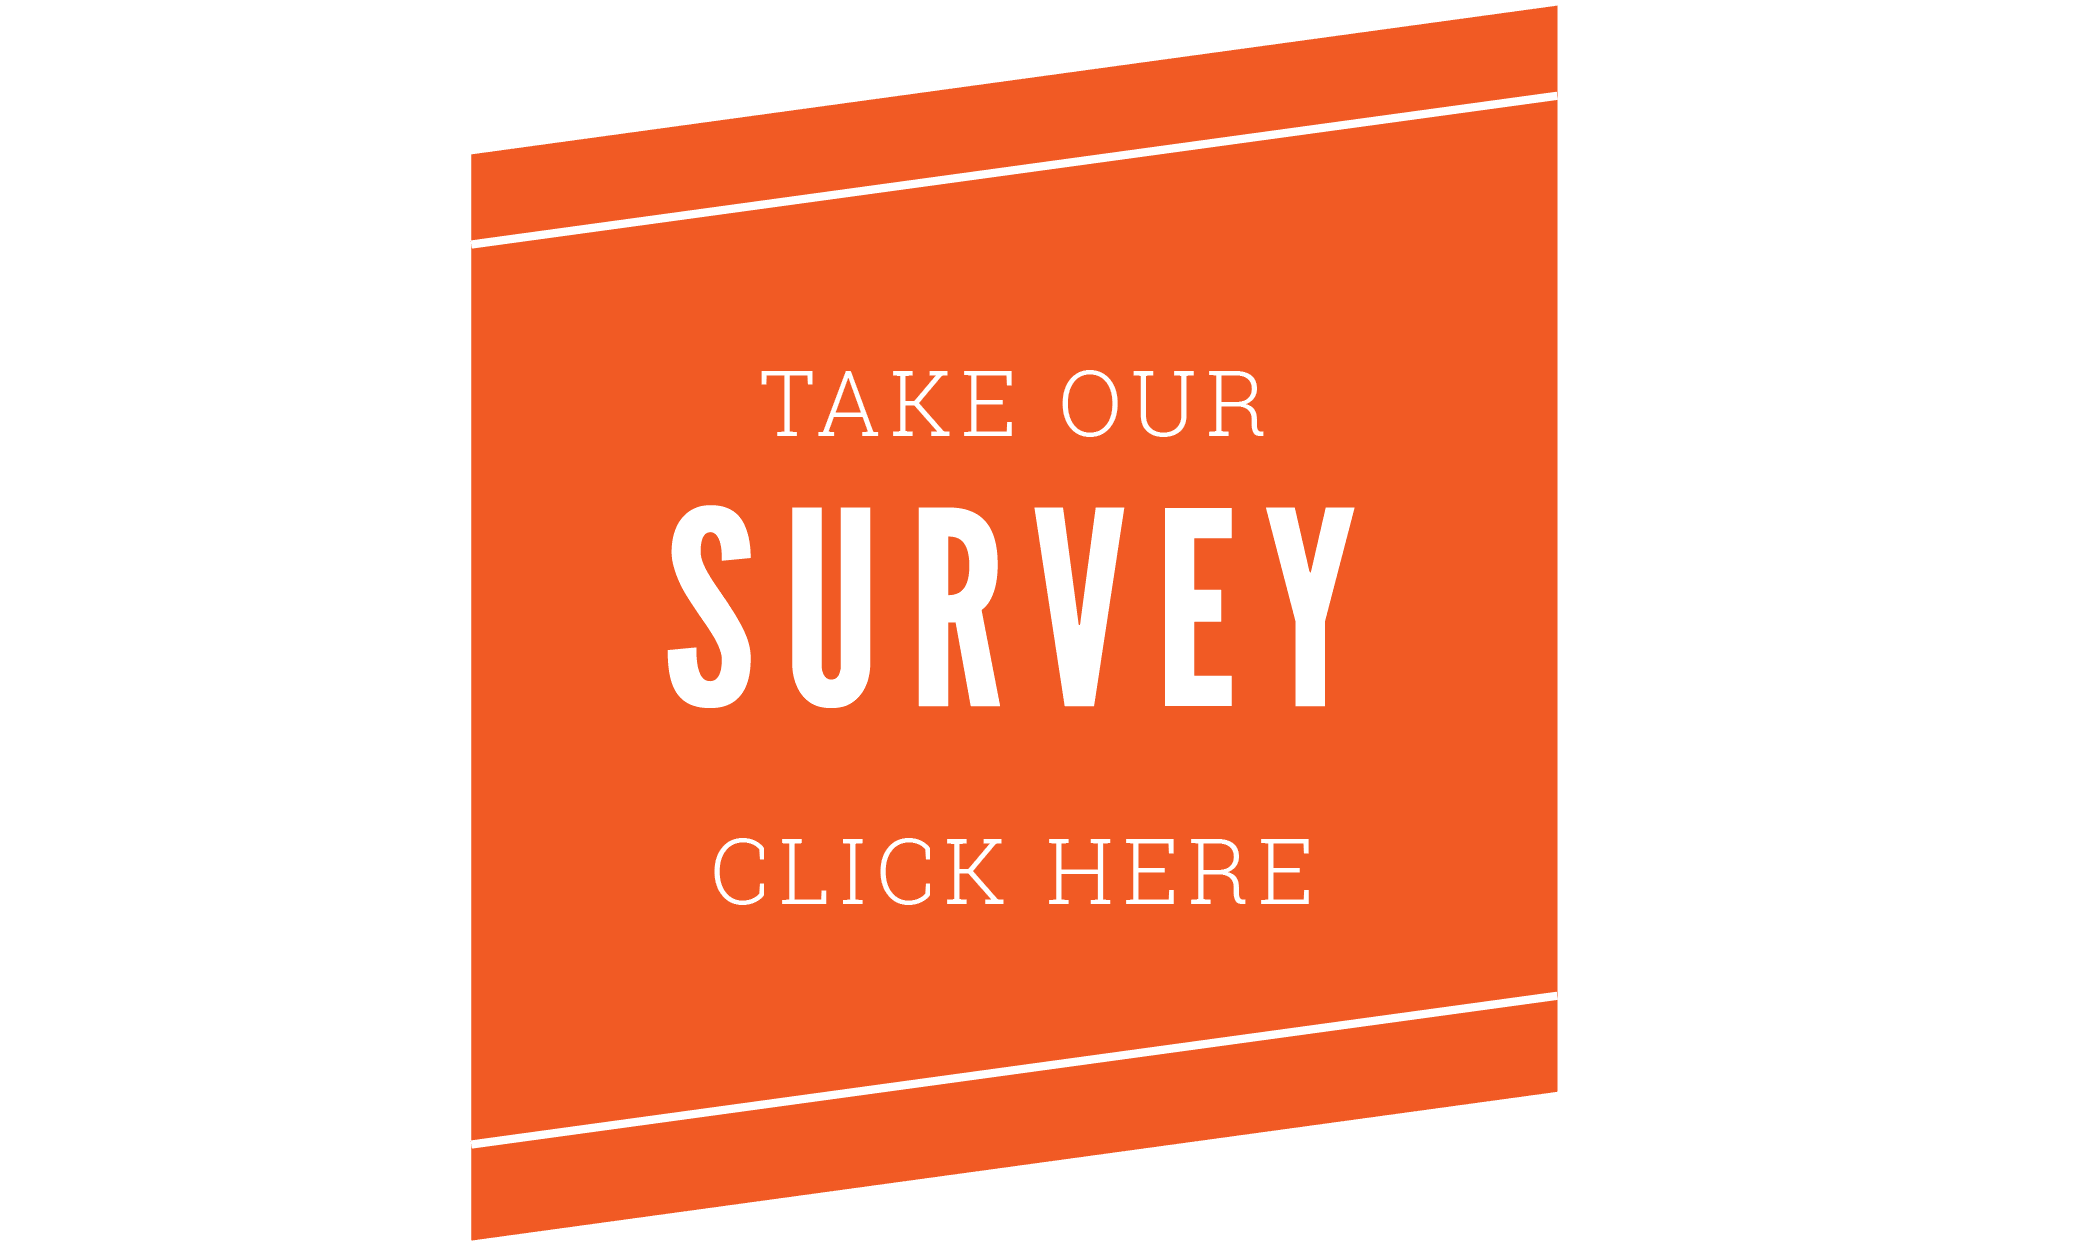 Survey Click Here